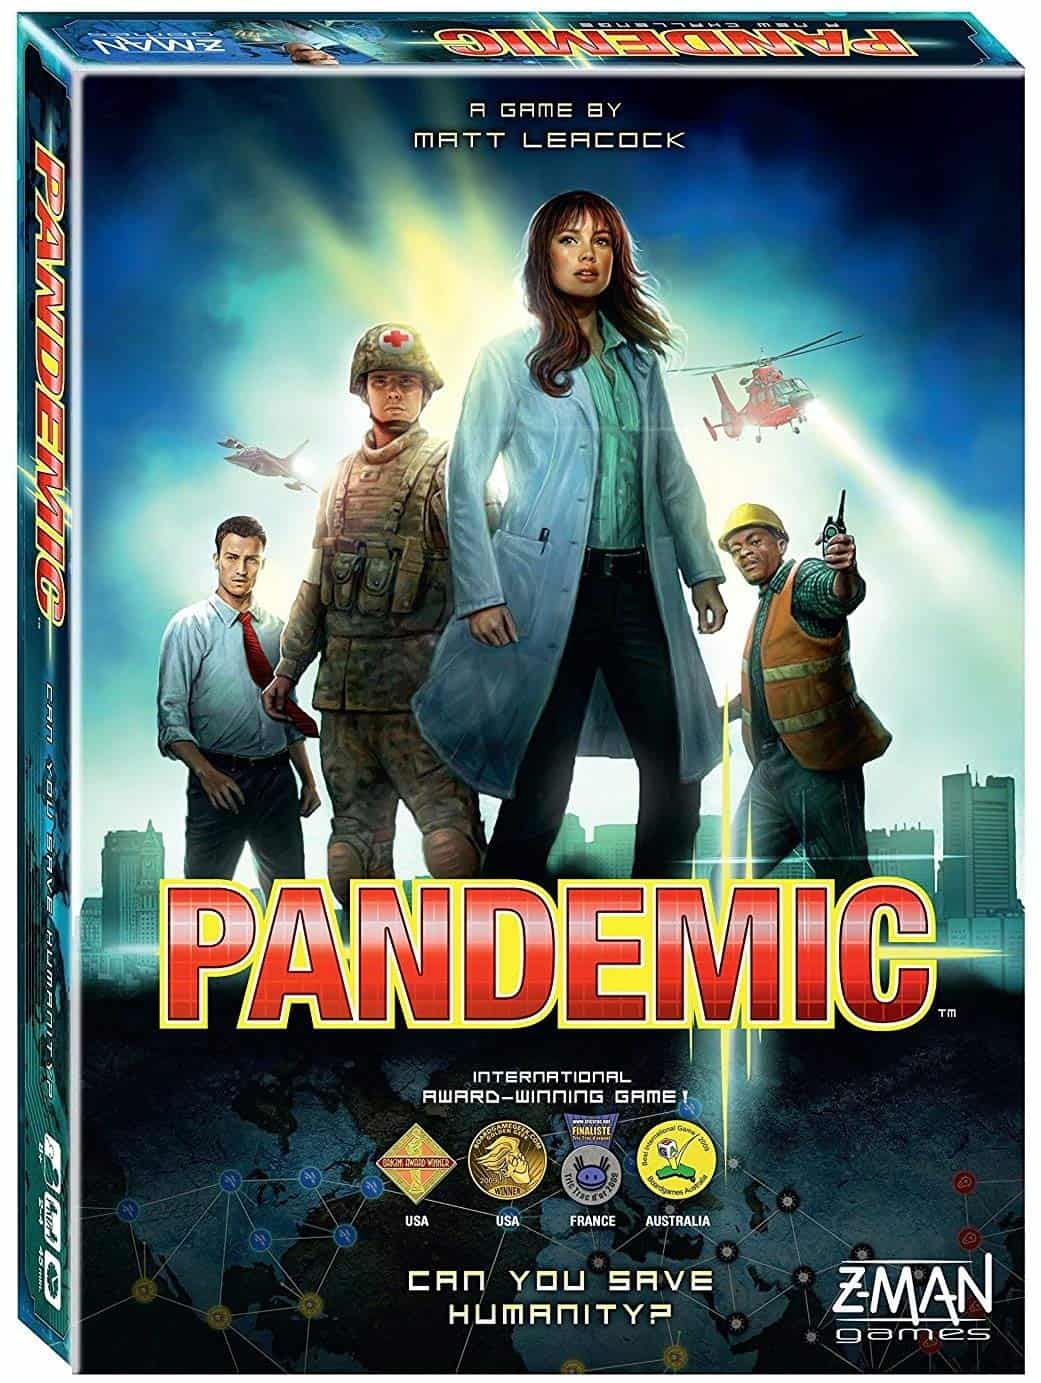 https://solidguides.com/wp-content/uploads/2020/01/pandemic.jpg